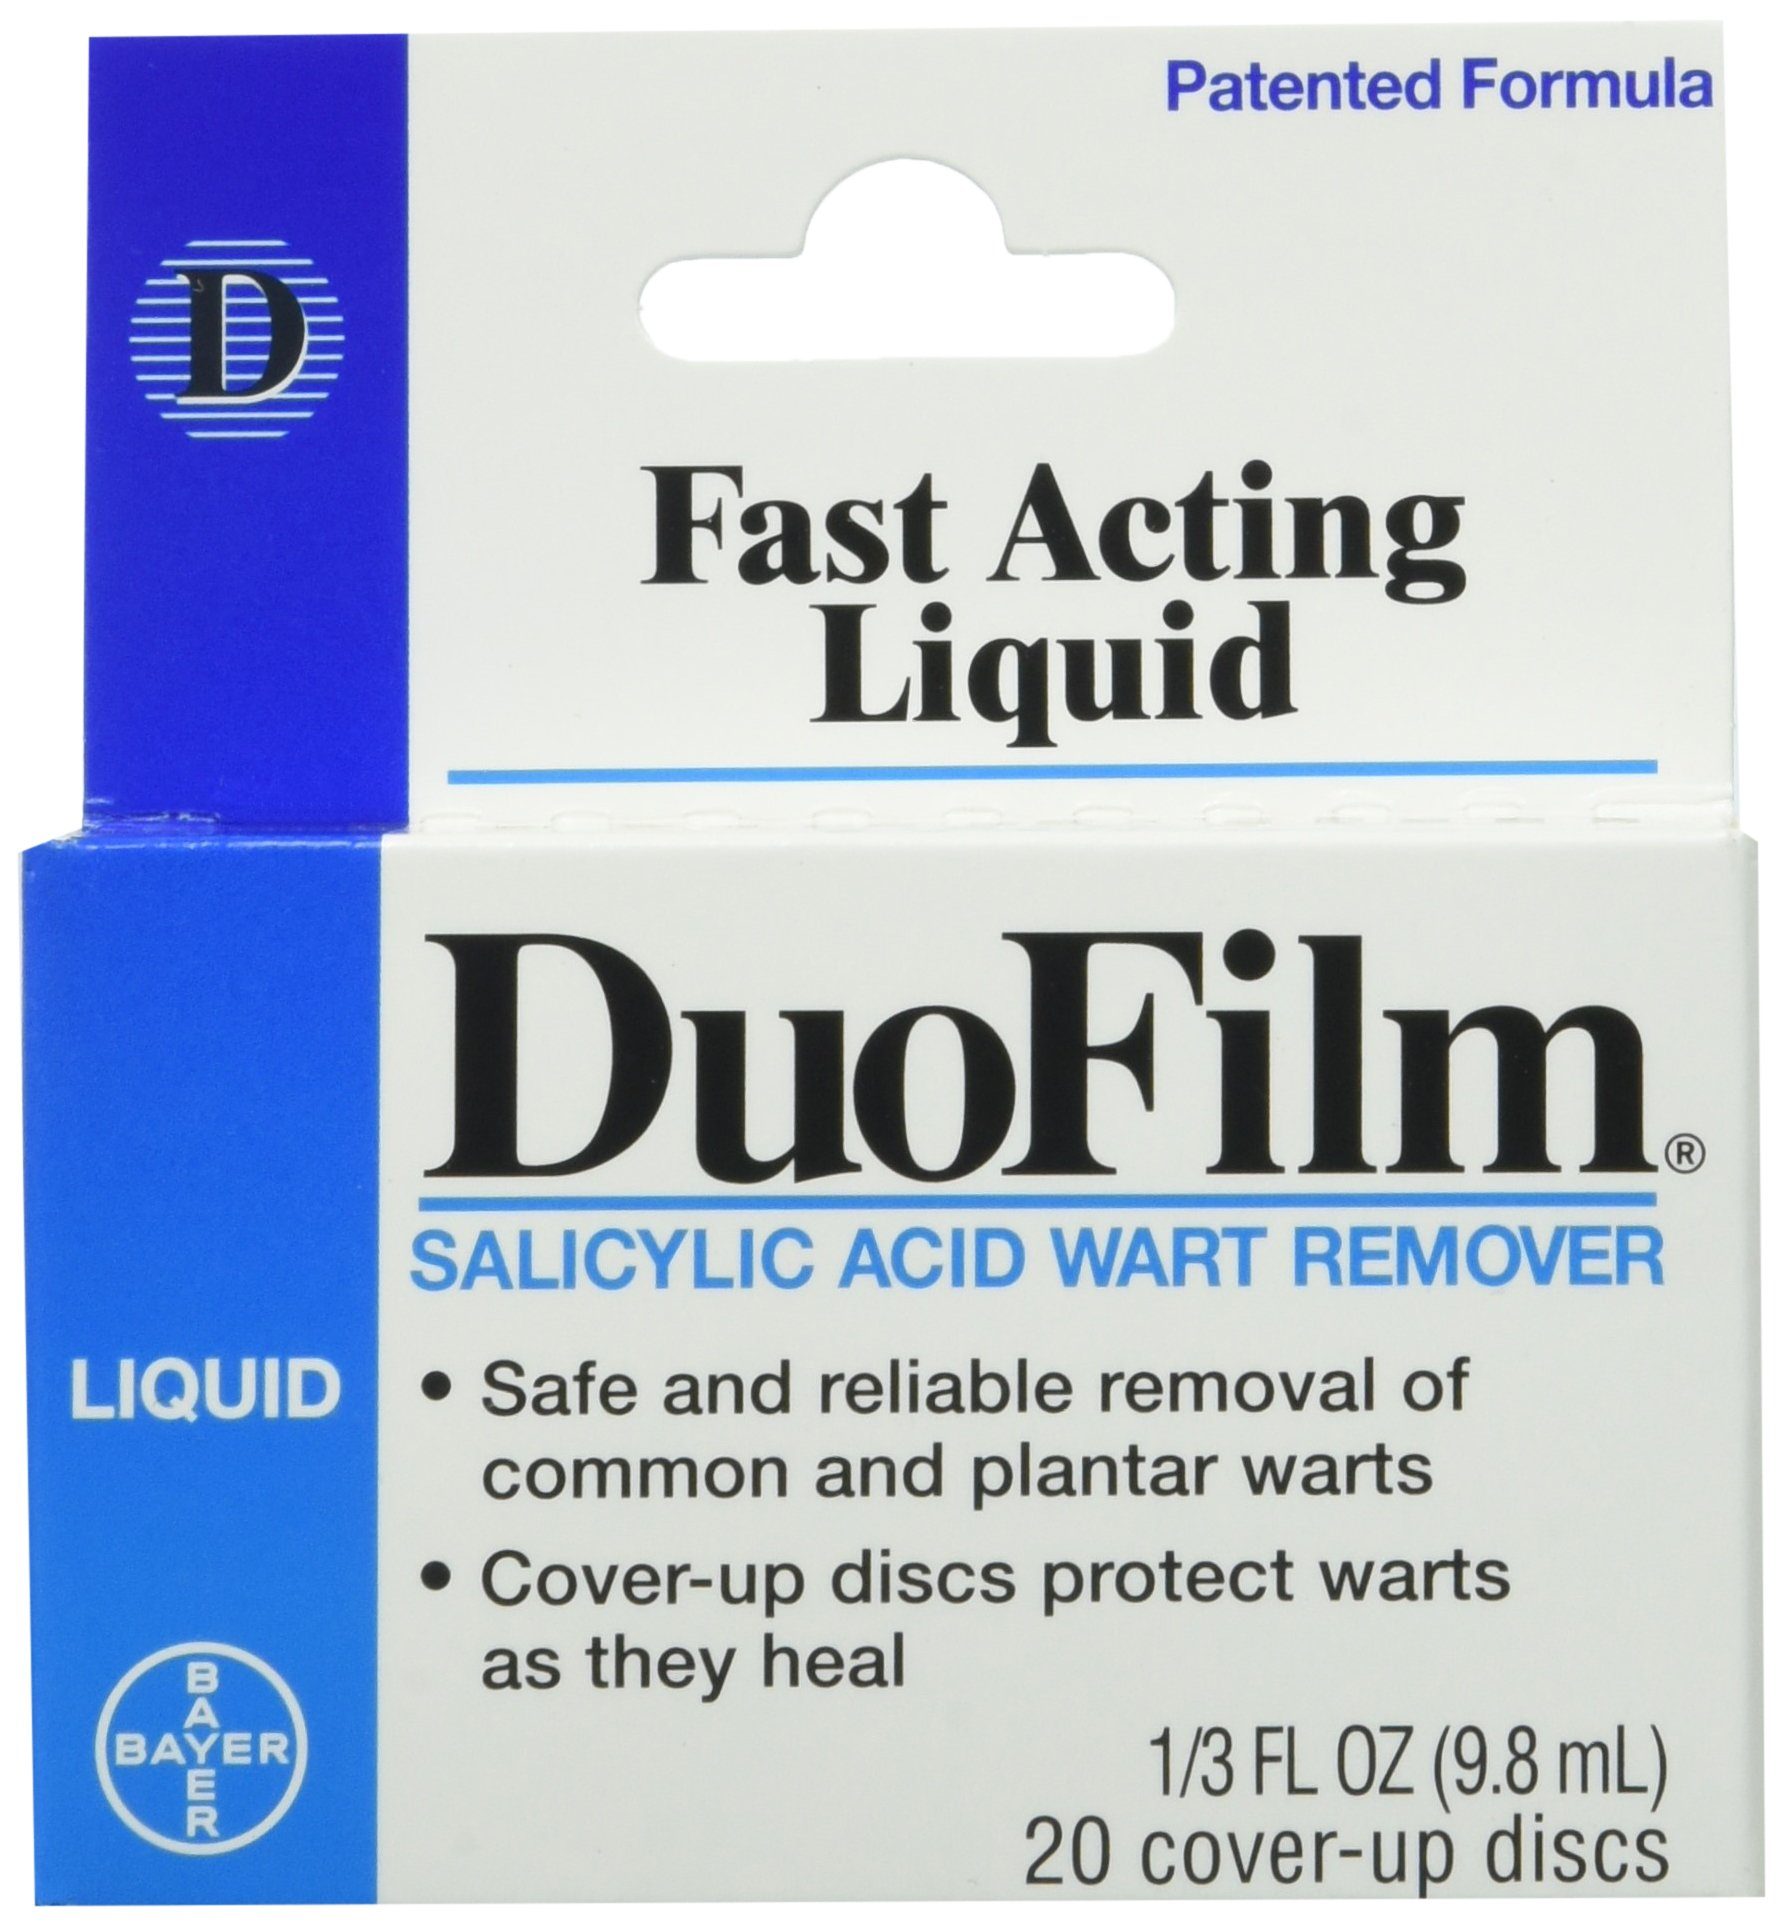 Duofilm Liquid Salicylic Acid Wart Remover - 1/3 Oz (Pack of 2) by Duofilm